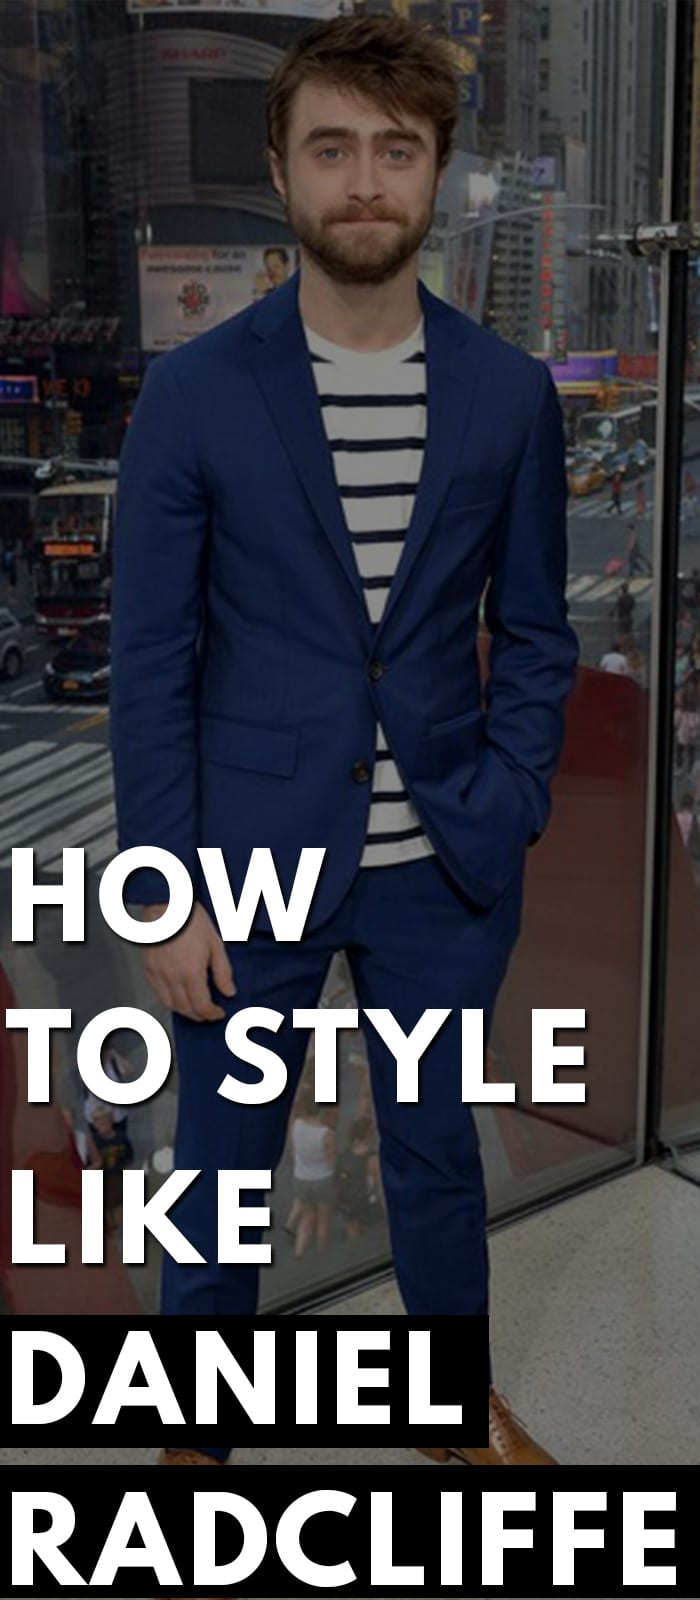 How To Style Like Daniel Radcliffe.